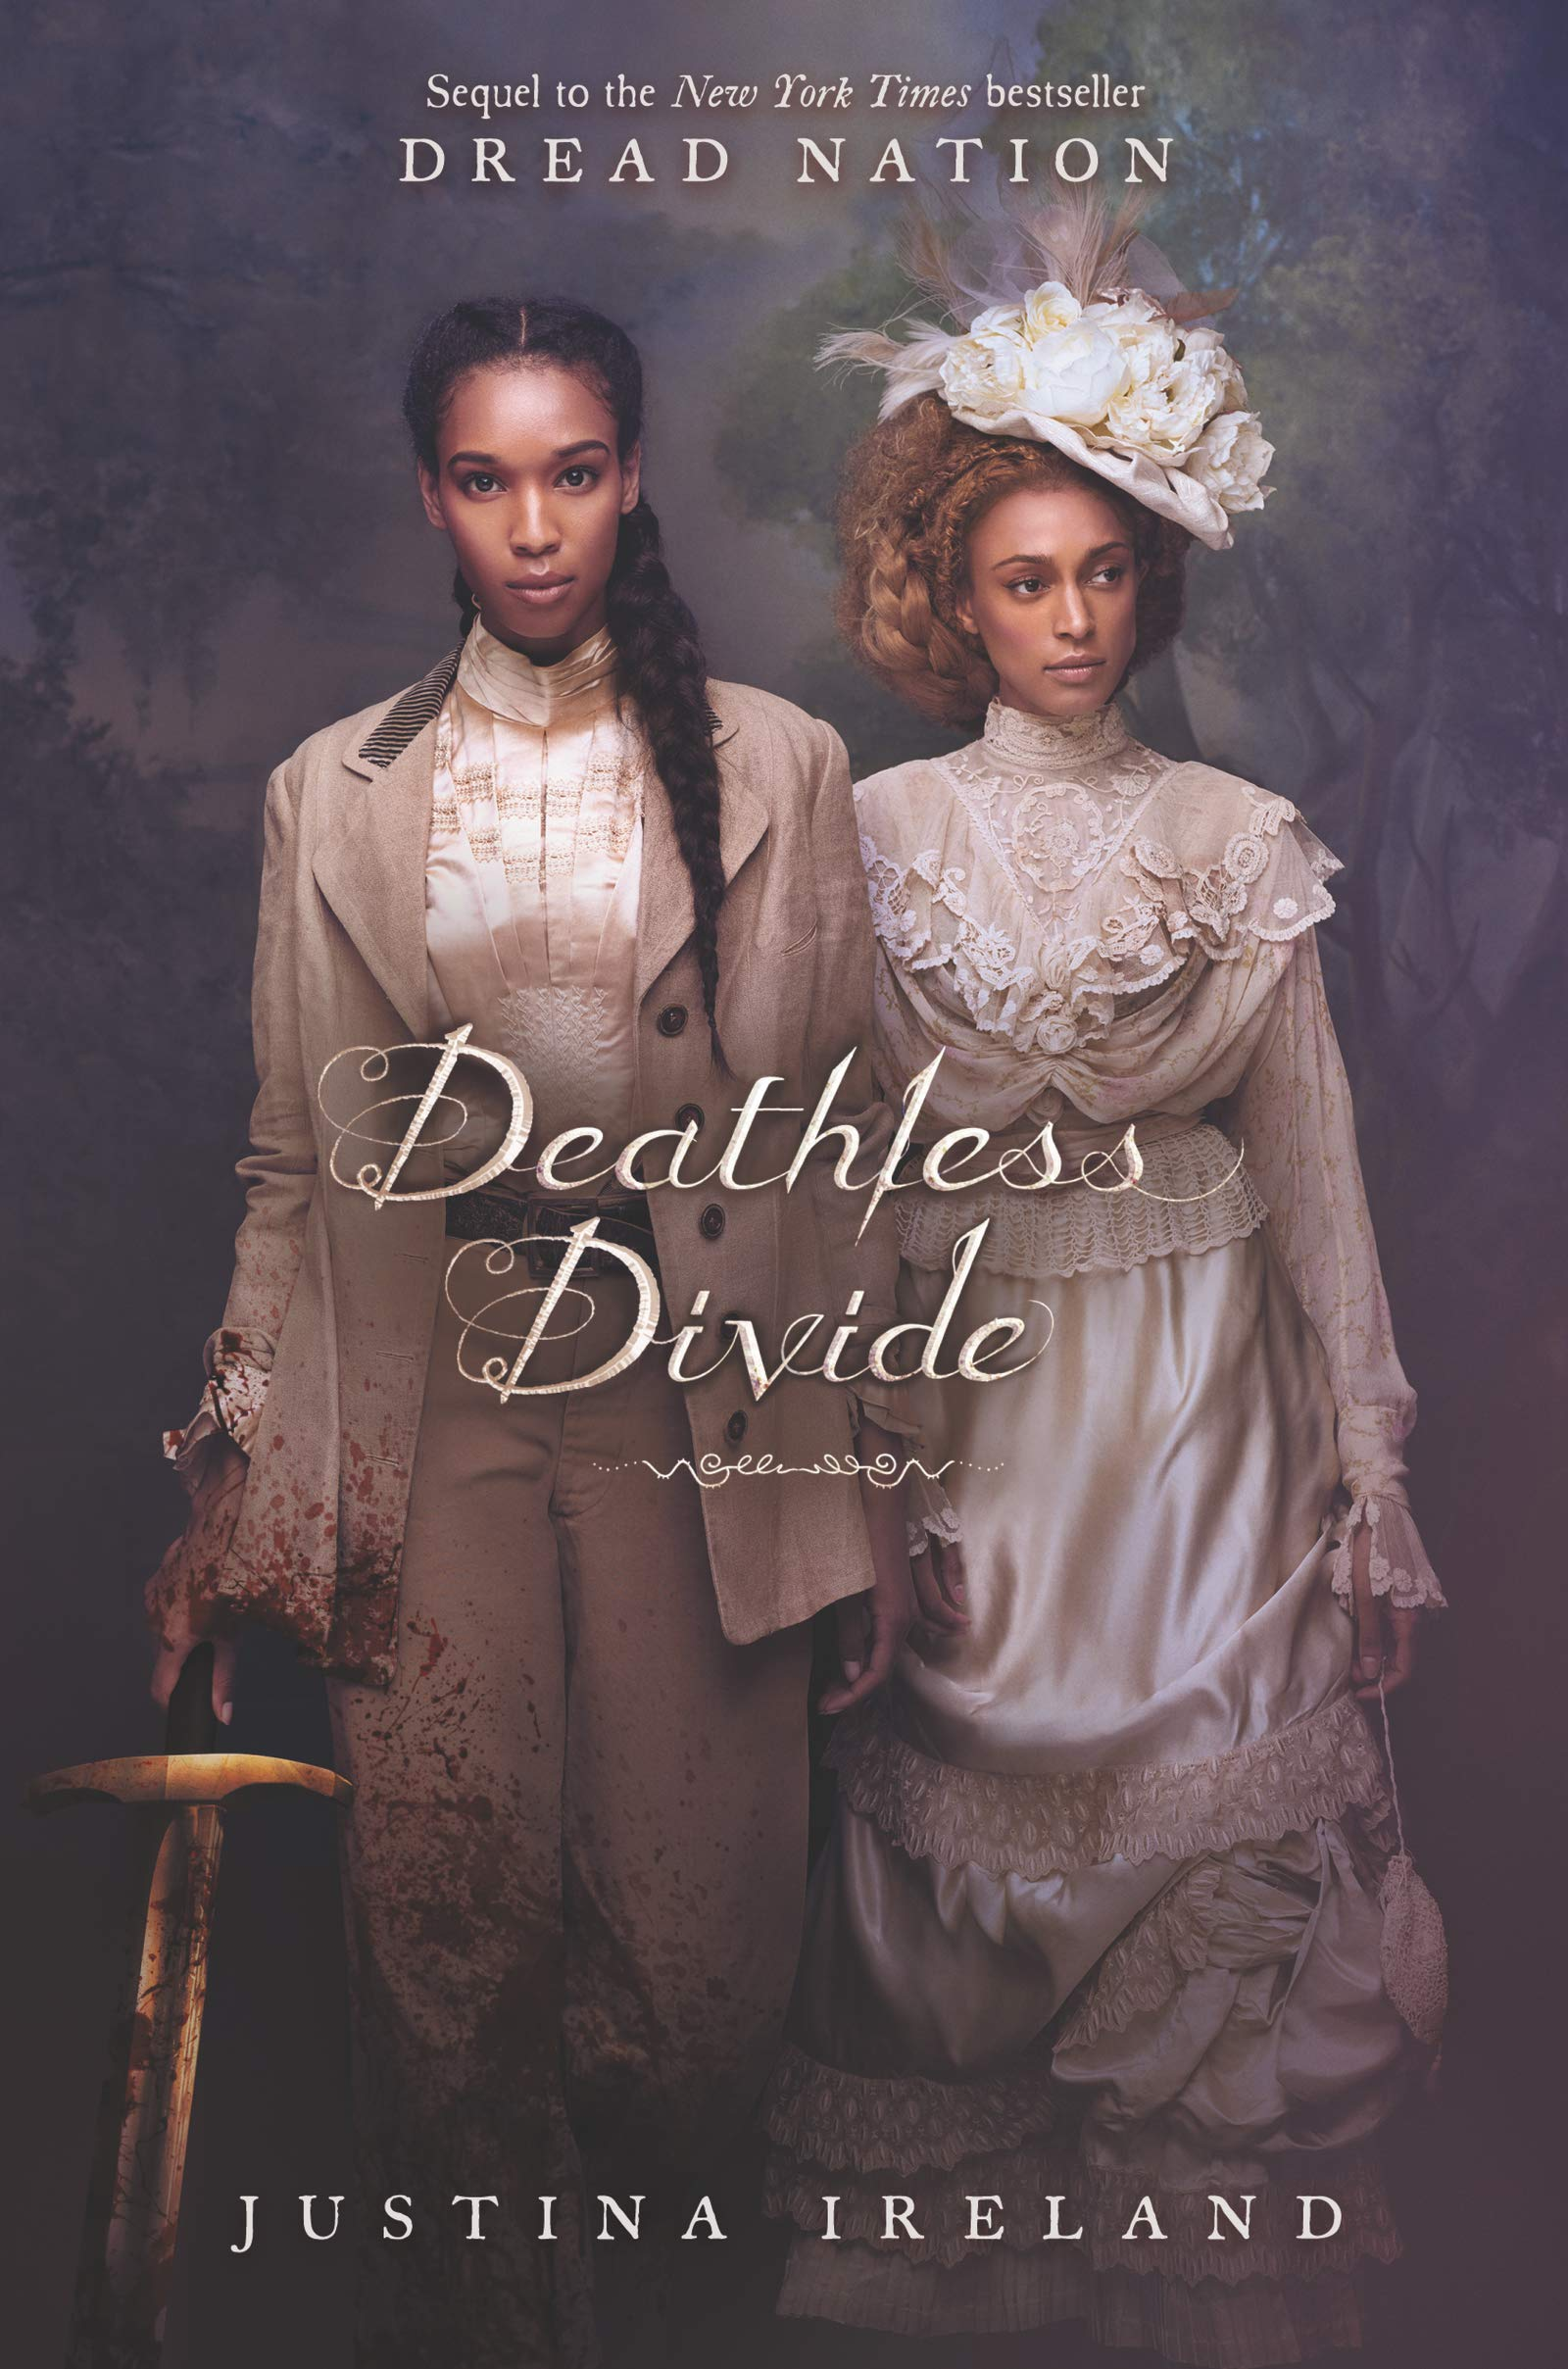 Amazon.com: Deathless Divide (Dread Nation) (9780062570635): Ireland,  Justina: Books